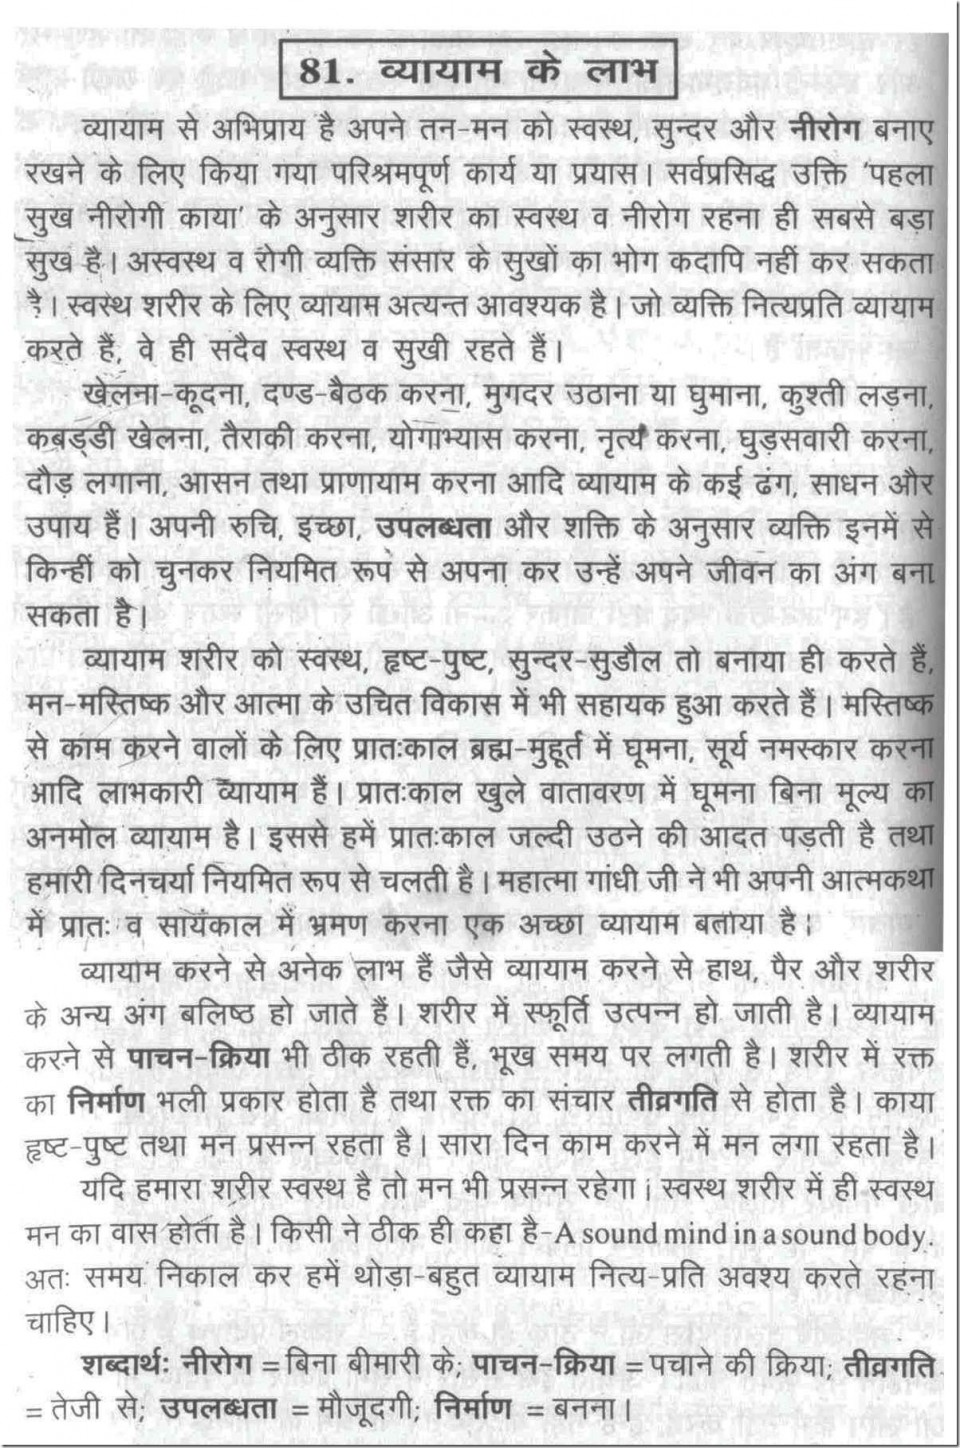 011 2563478896 Essay On Health And Fitness Through Food Good Habits In Hindi Exceptional Reading Habit Wikipedia 960